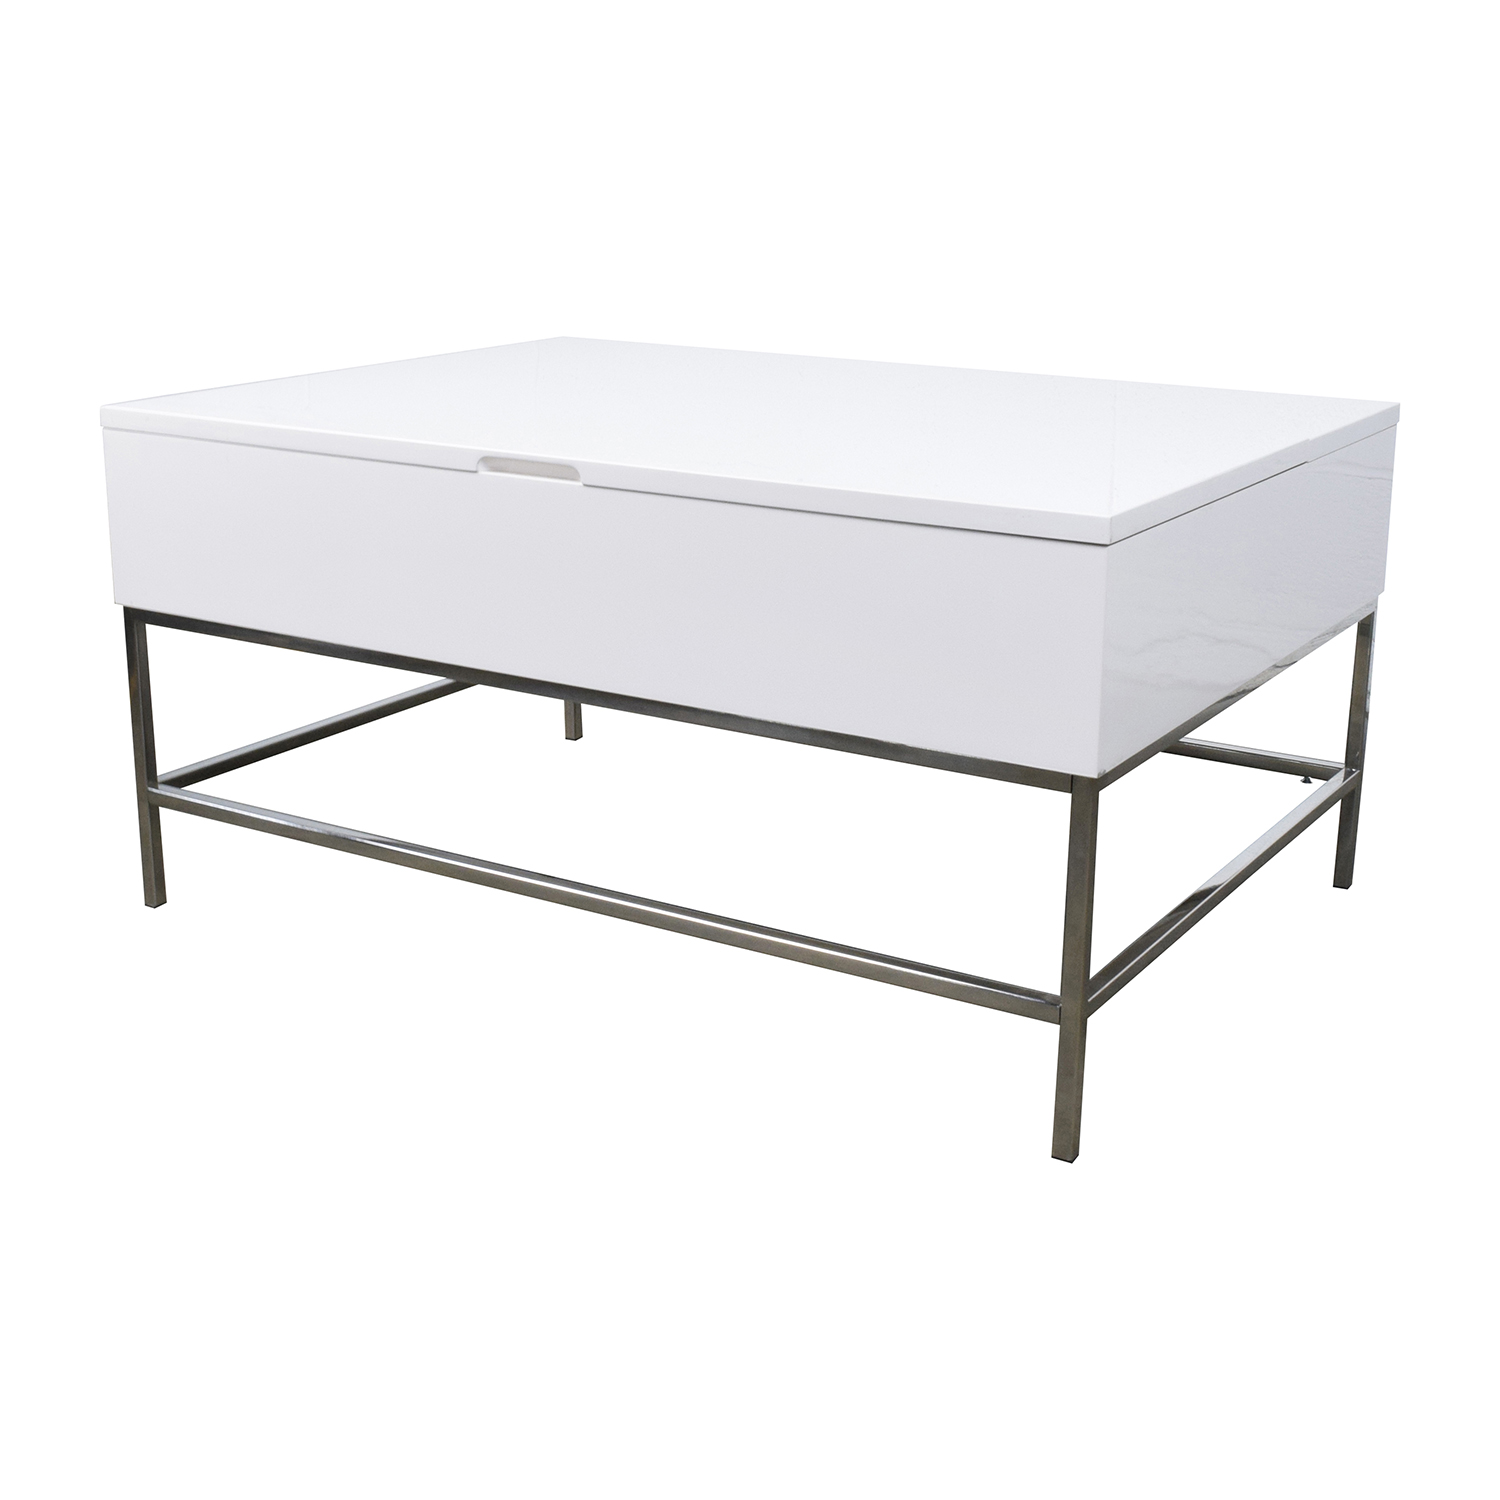 OFF West Elm Storage Table West Elm White Lacquer Wood